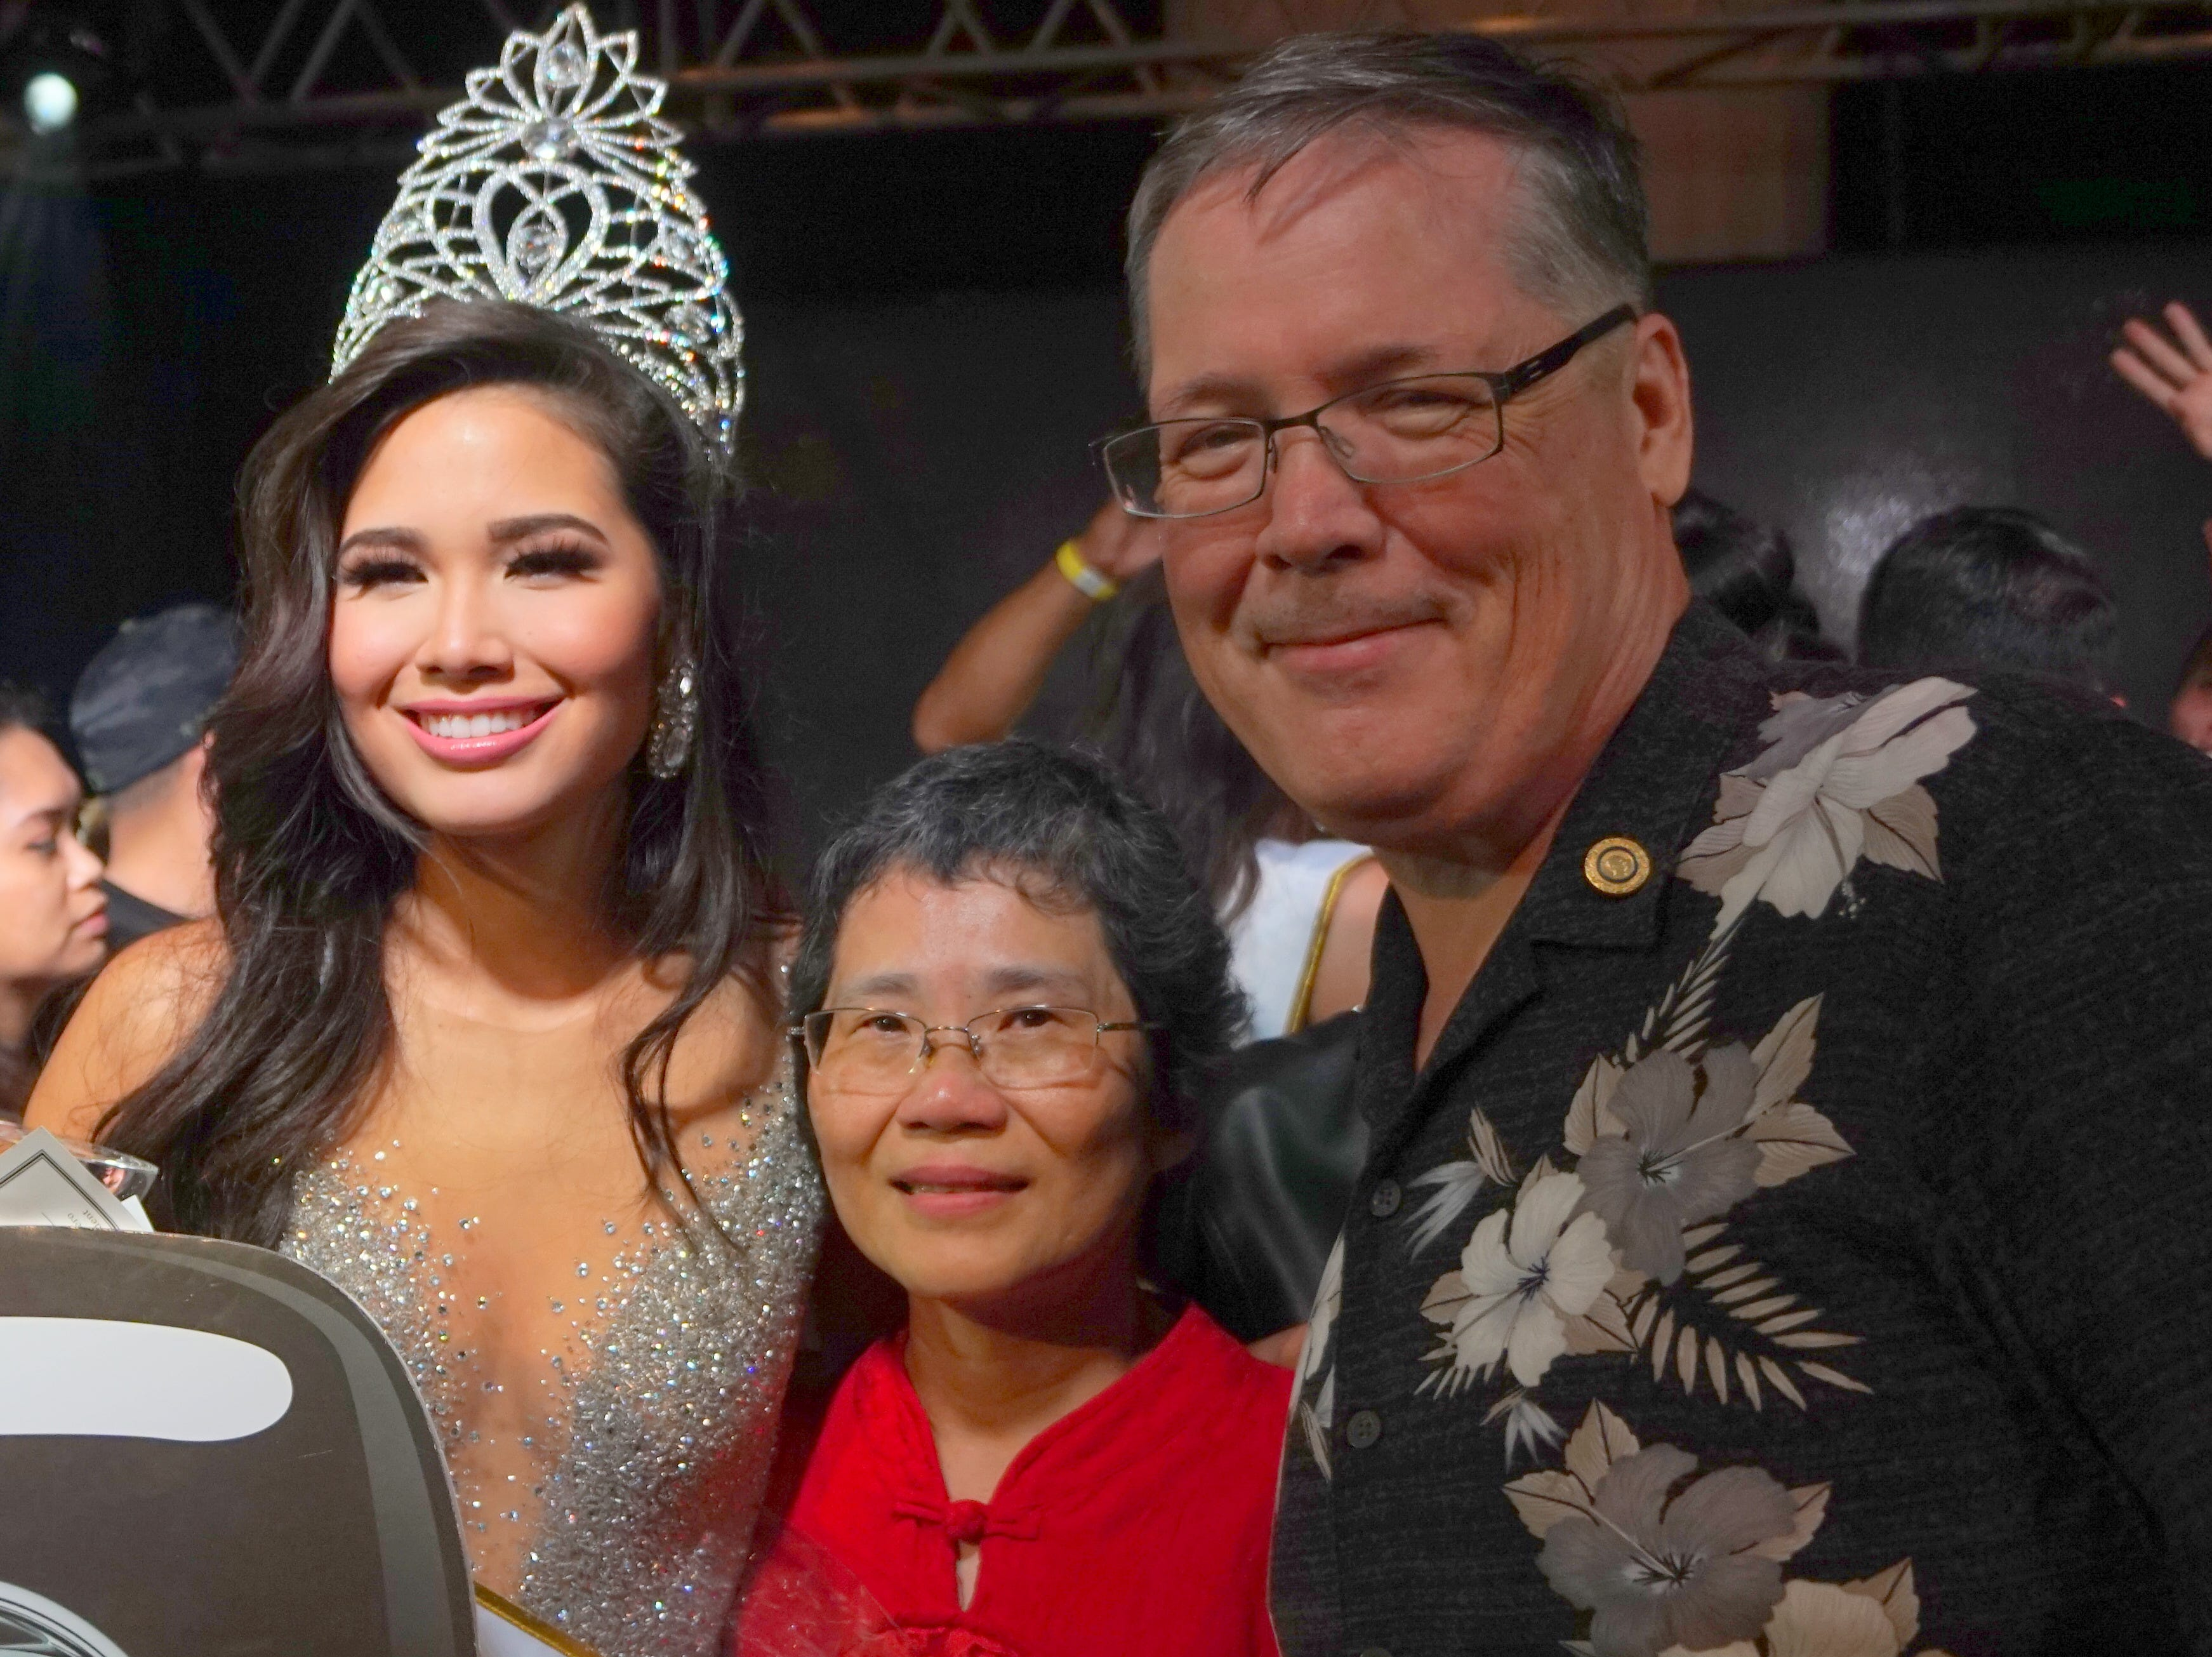 Dr. Ron and Rose Mcninch posing with their daughter, the 2018 crowned Miss Universe Guam, contestant 12 Athena Mcninch. The Miss Universe Guam Pageant held at Sheraton Laguna Guam Resort.